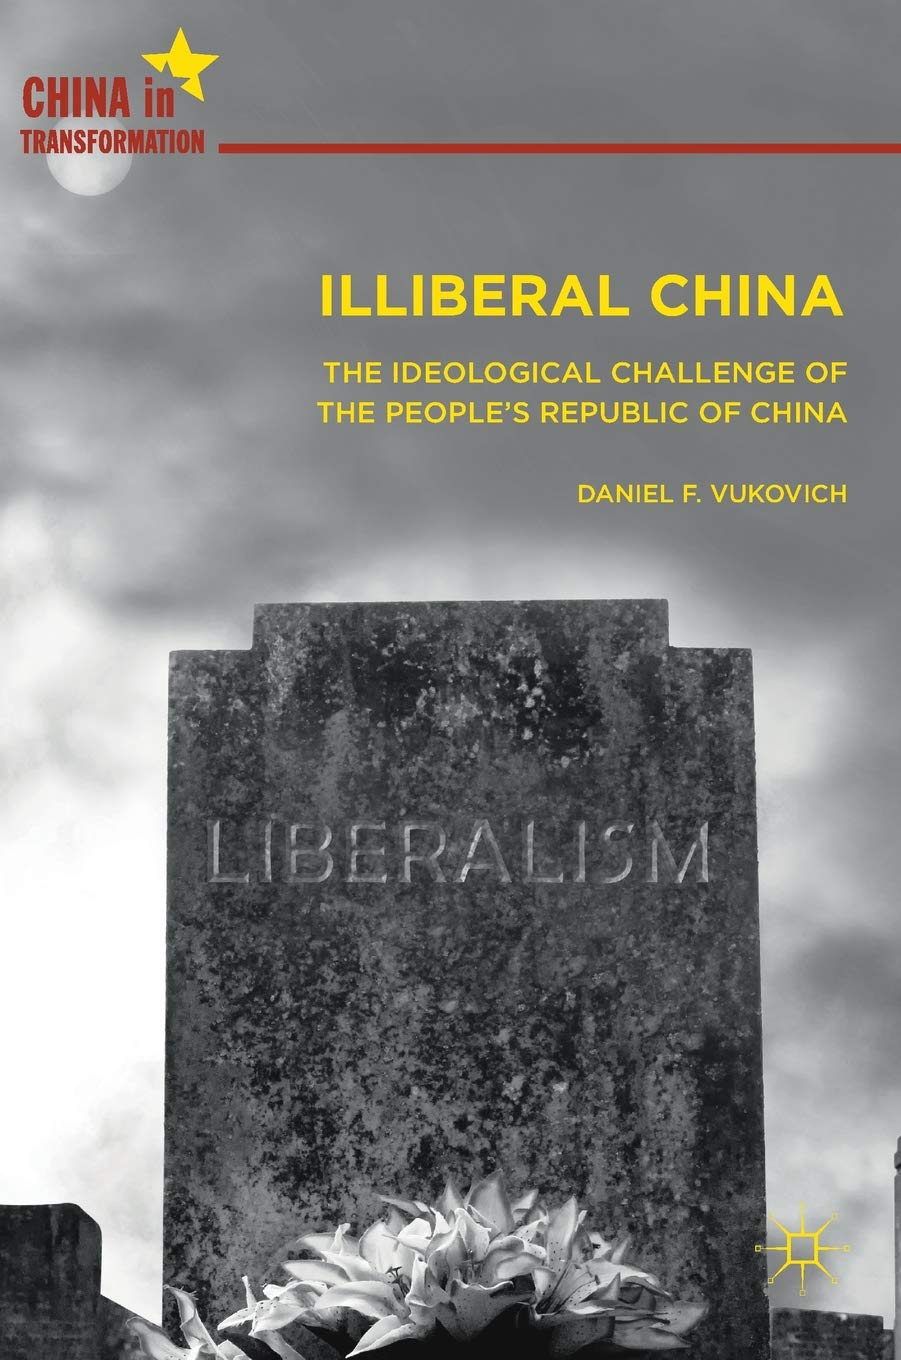 Illiberal China: The Ideological Challenge of the People's Republic of China (China in Transformation) ebook